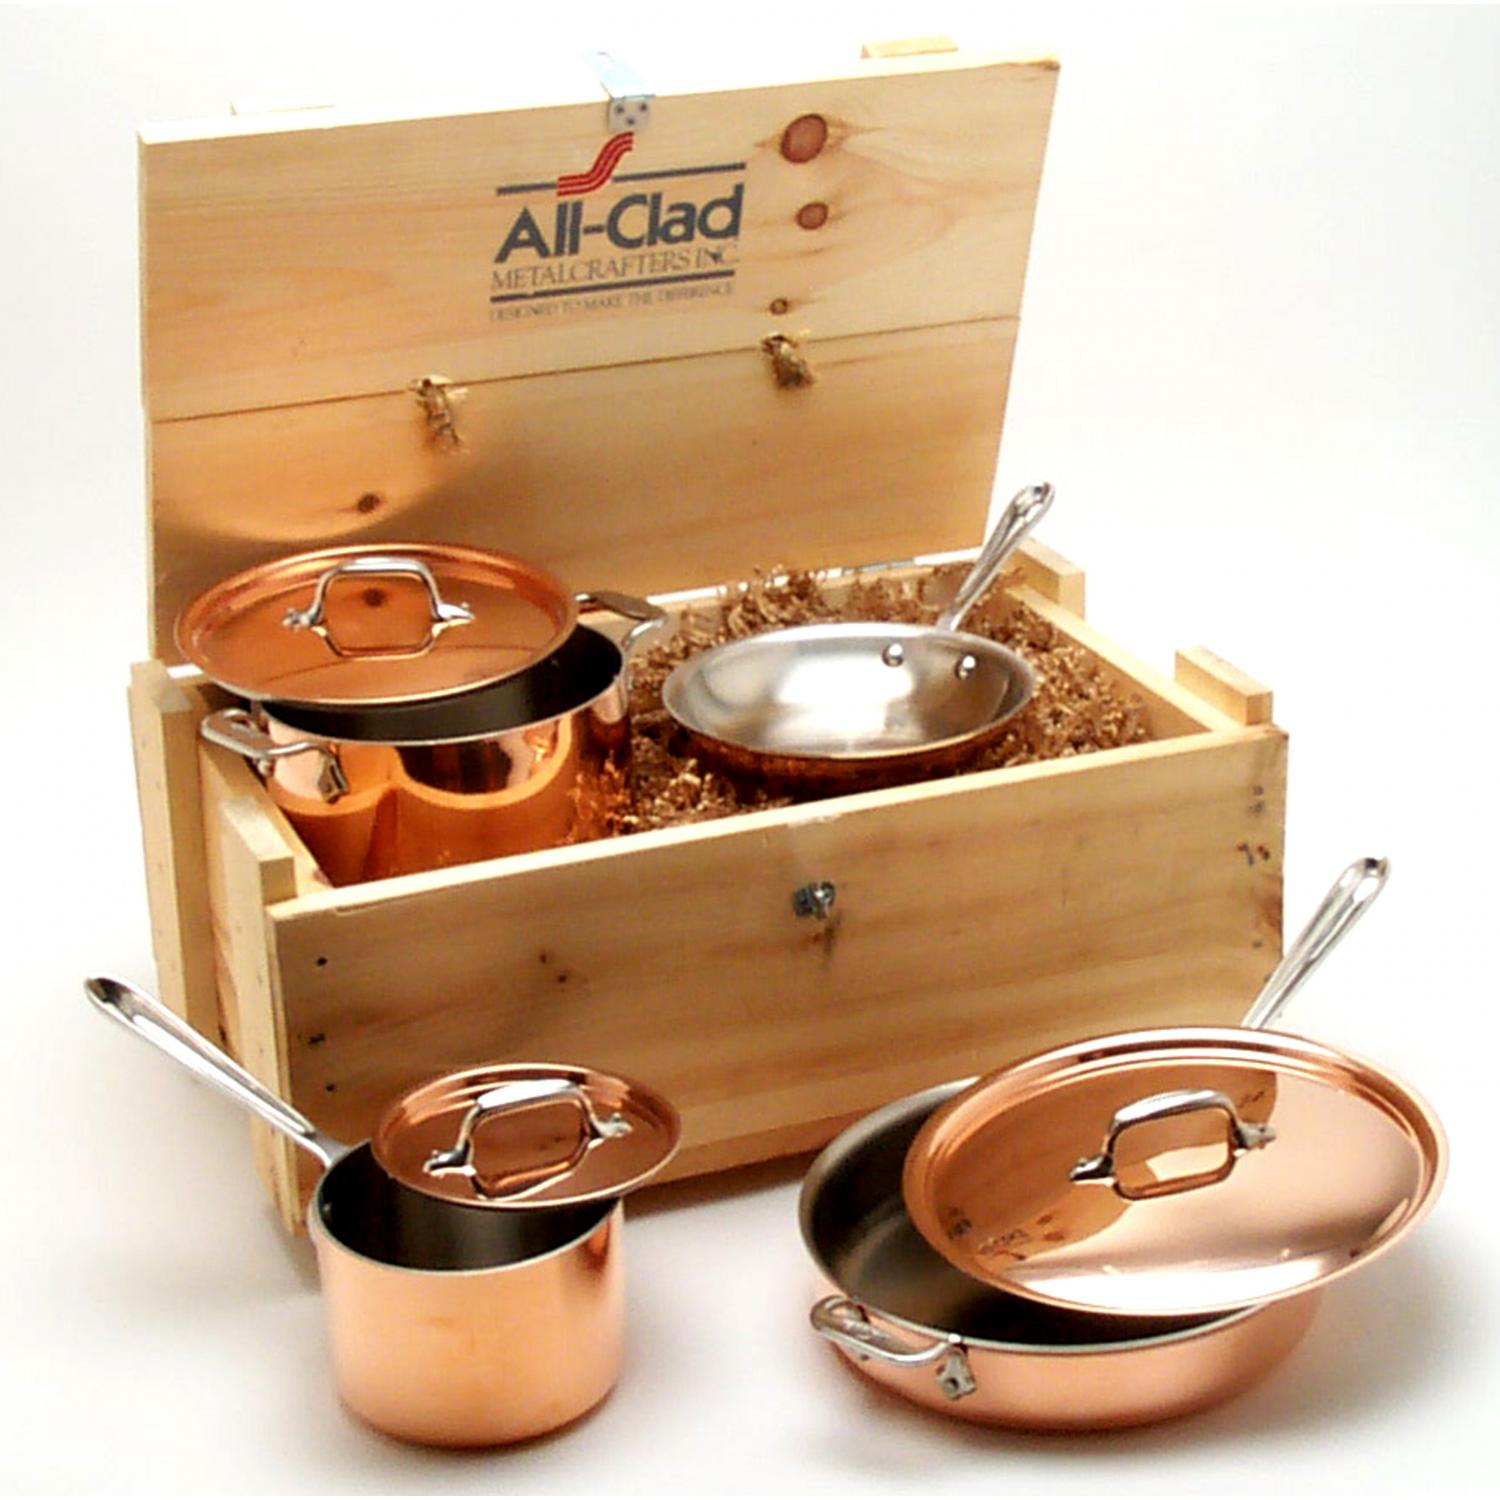 All-Clad Cop-R-Chef 7-Piece Cookware Set